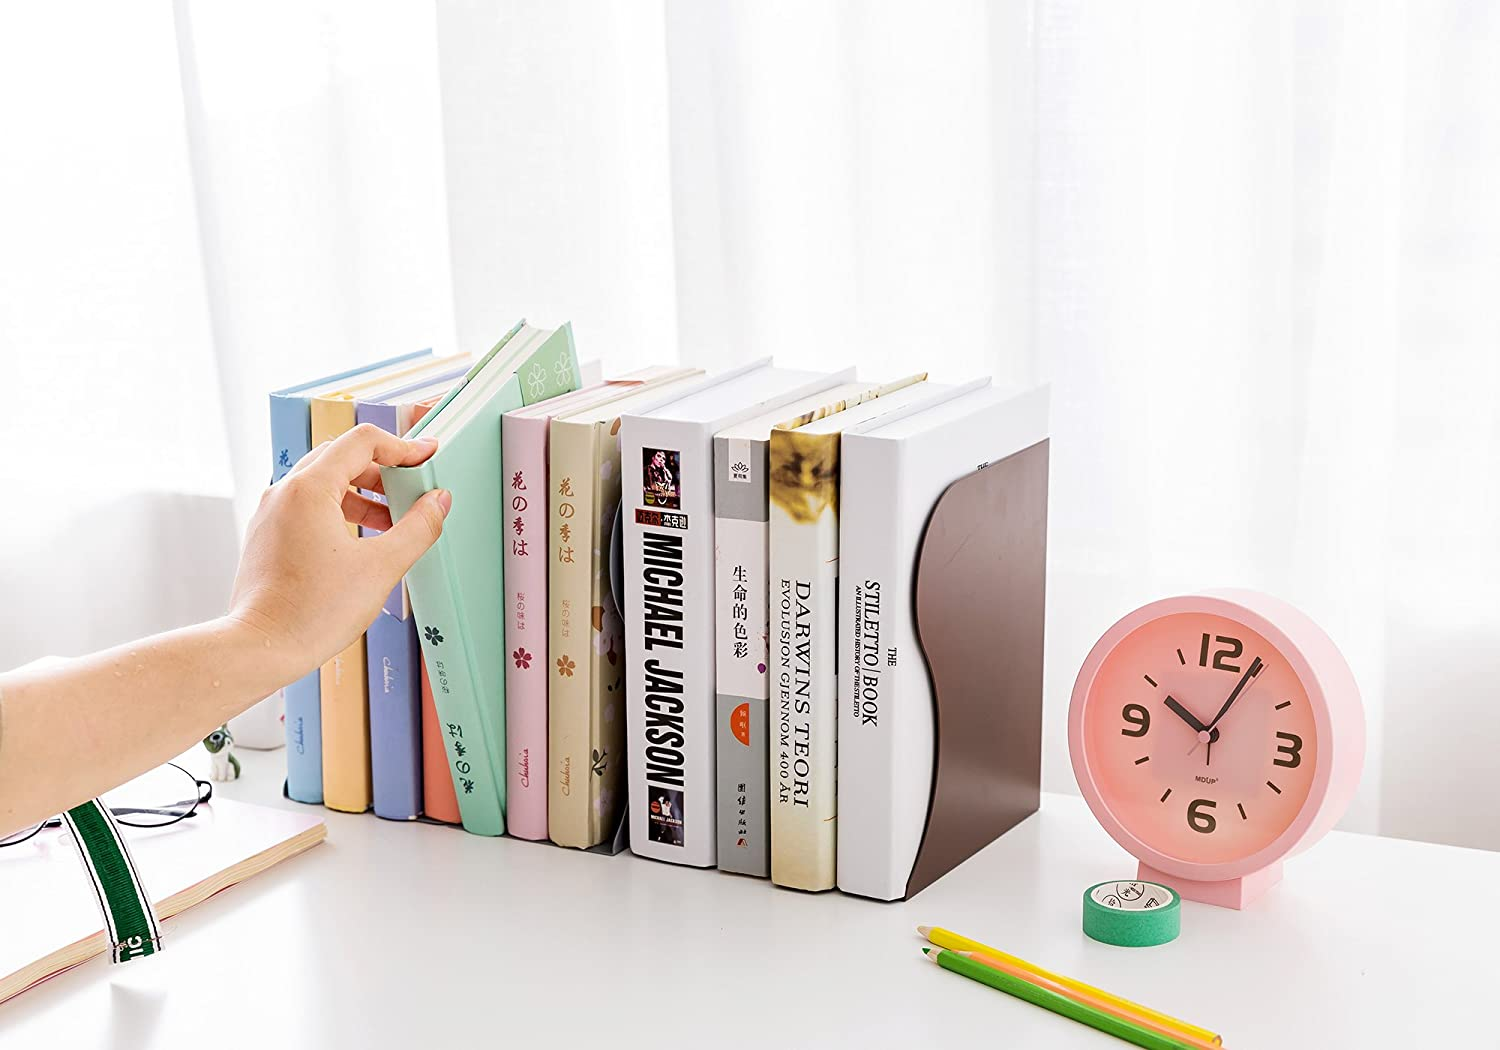 Y-H Simple Style Decorative Metal Iron Bookends Holder Stand Desk Nonskid Adjustable Bookend White